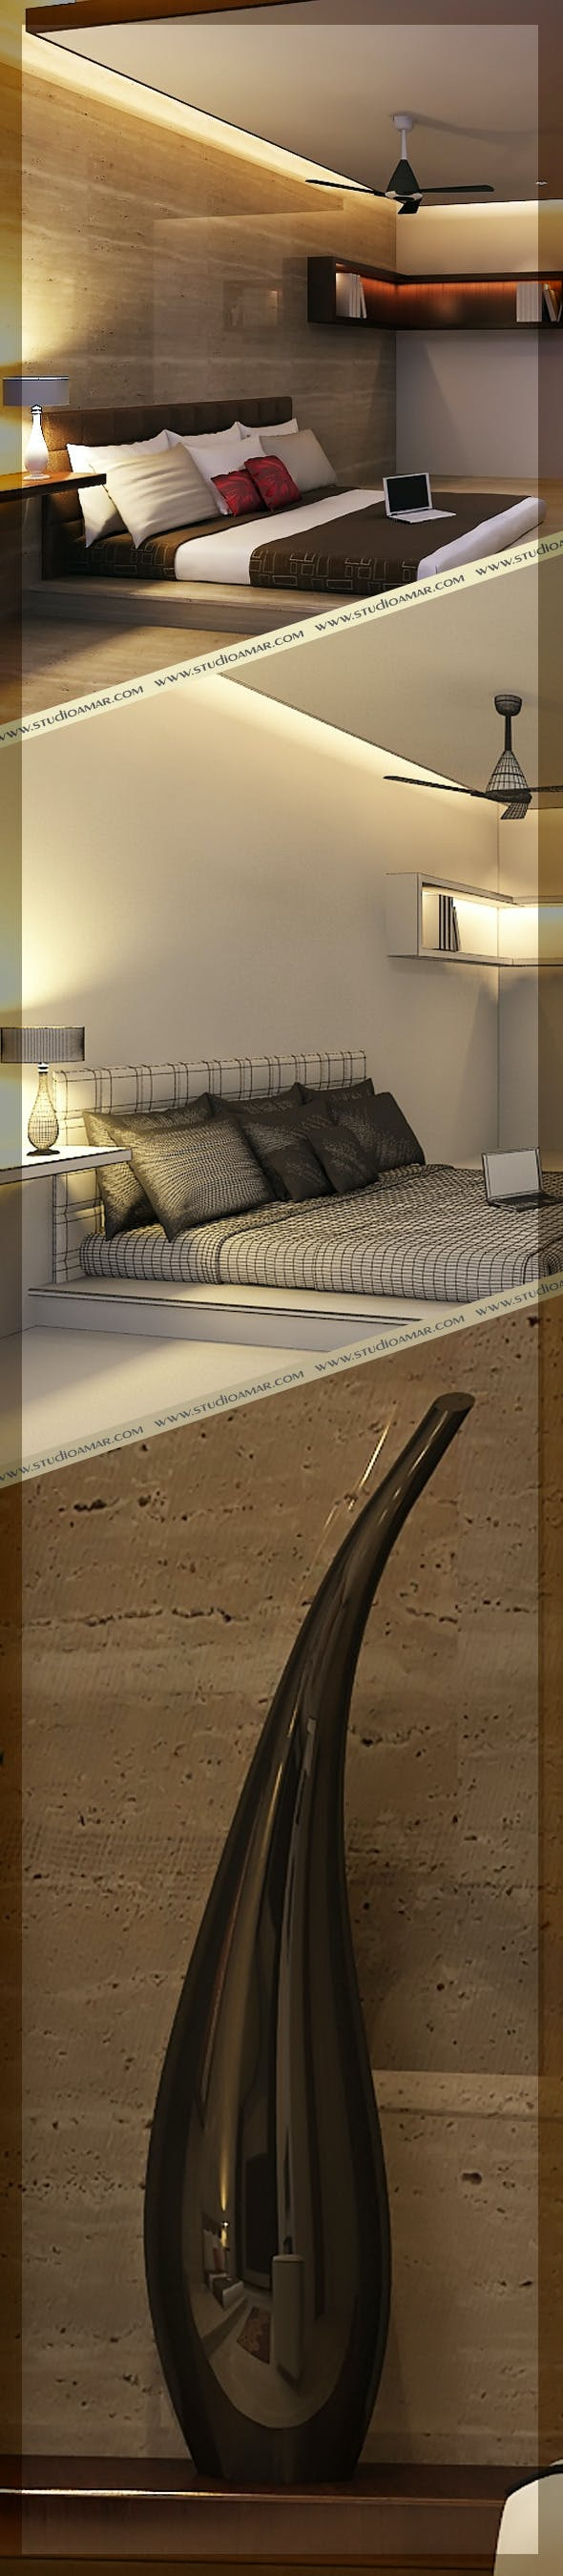 Realistic Bed Room 122 - 3DOcean Item for Sale